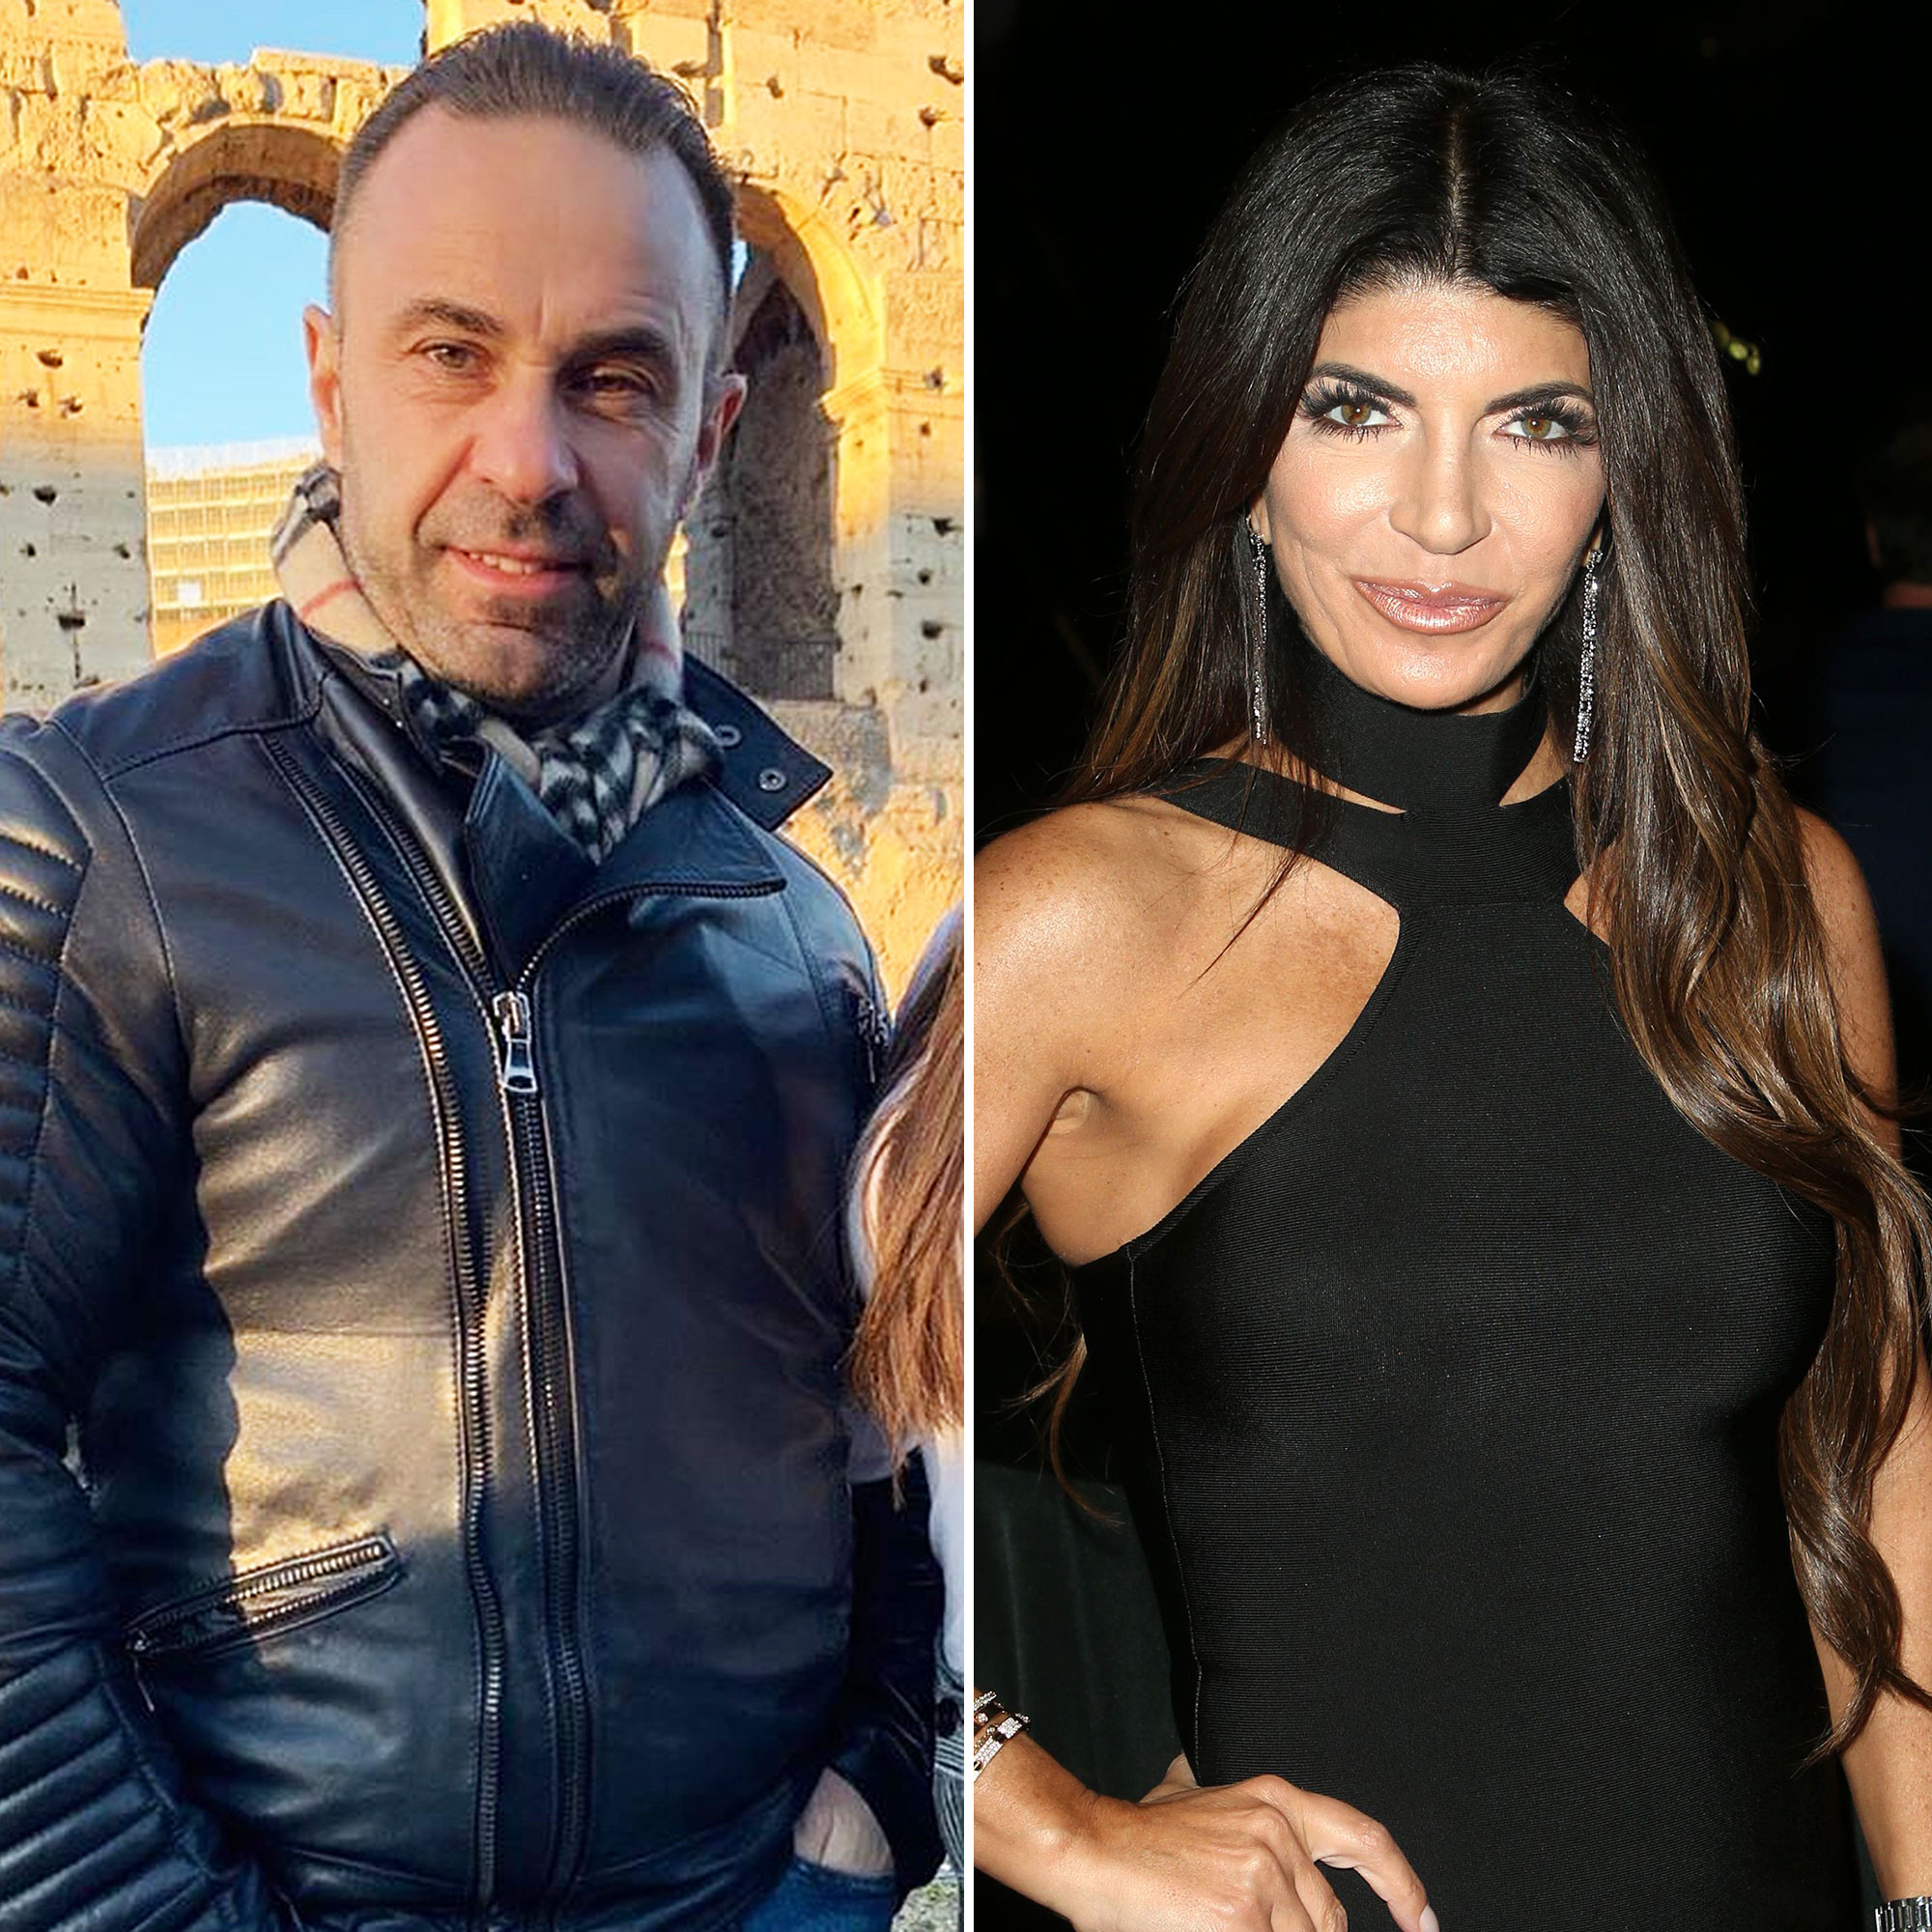 RHONJ's Teresa Giudice signed a prenup with a cheating clause